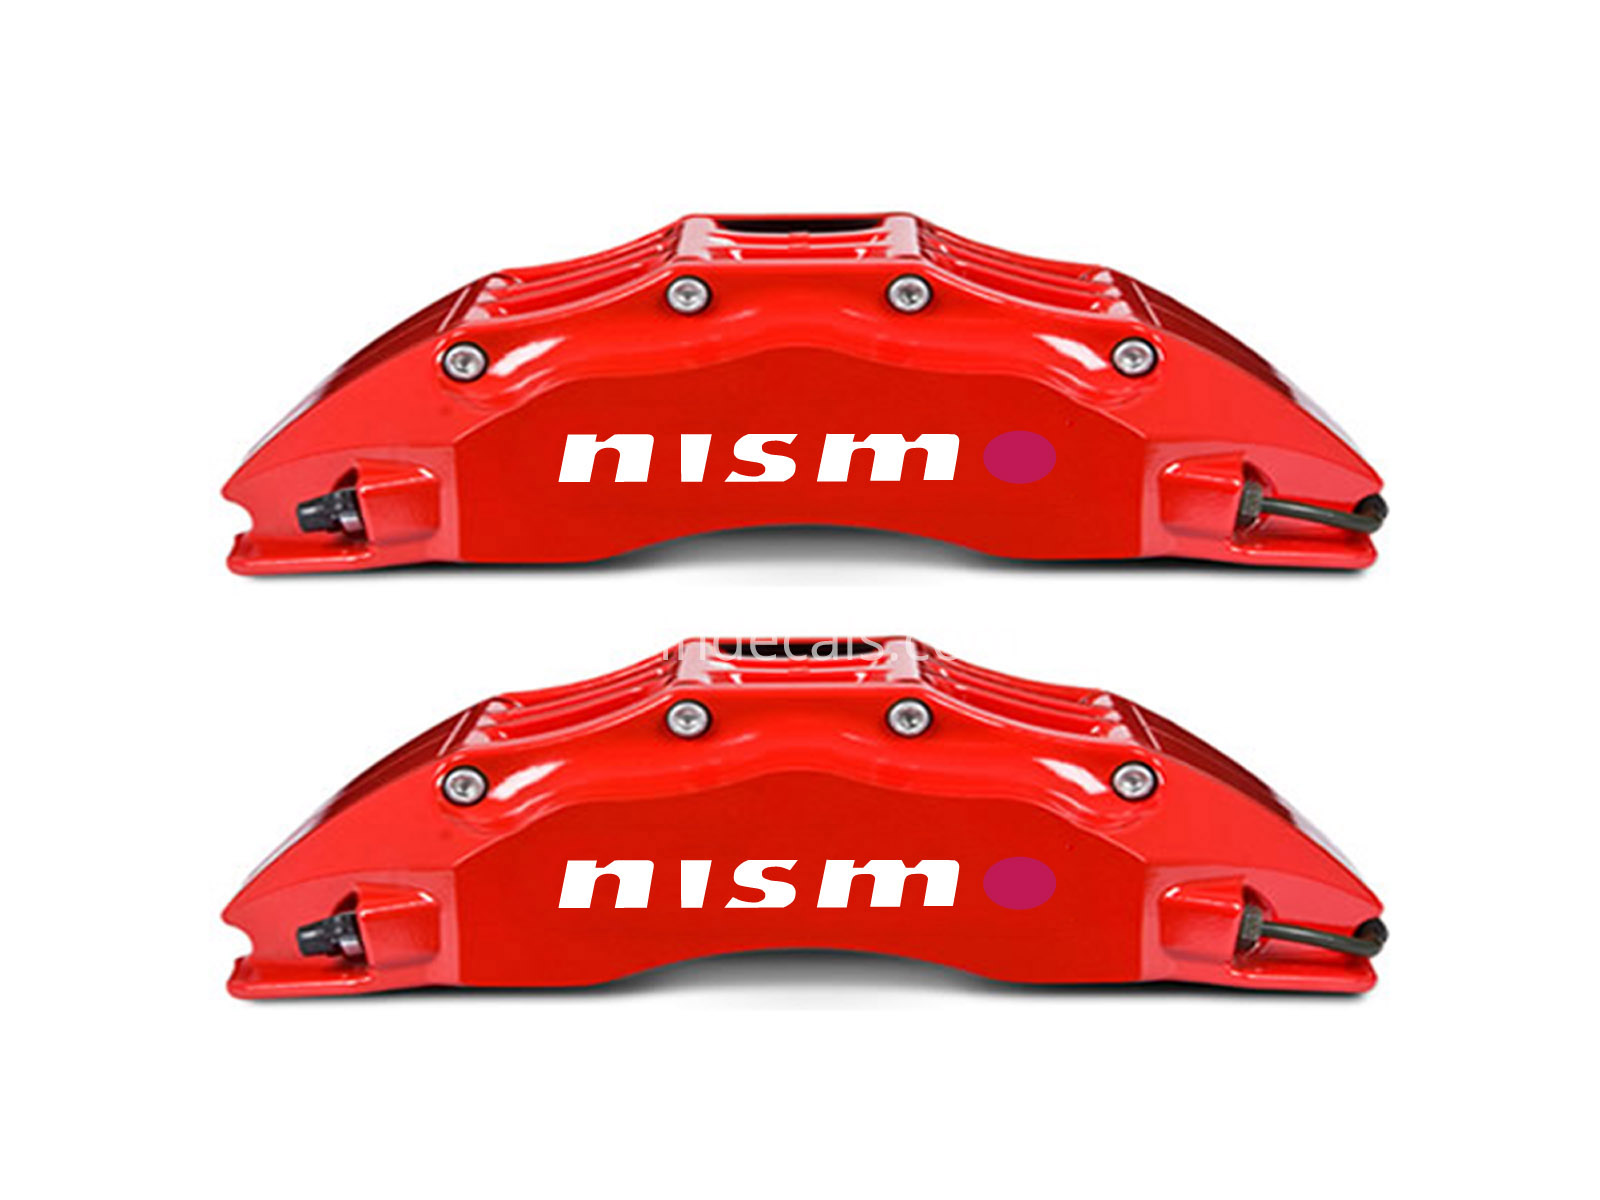 6 x Nismo Stickers for Brakes - White